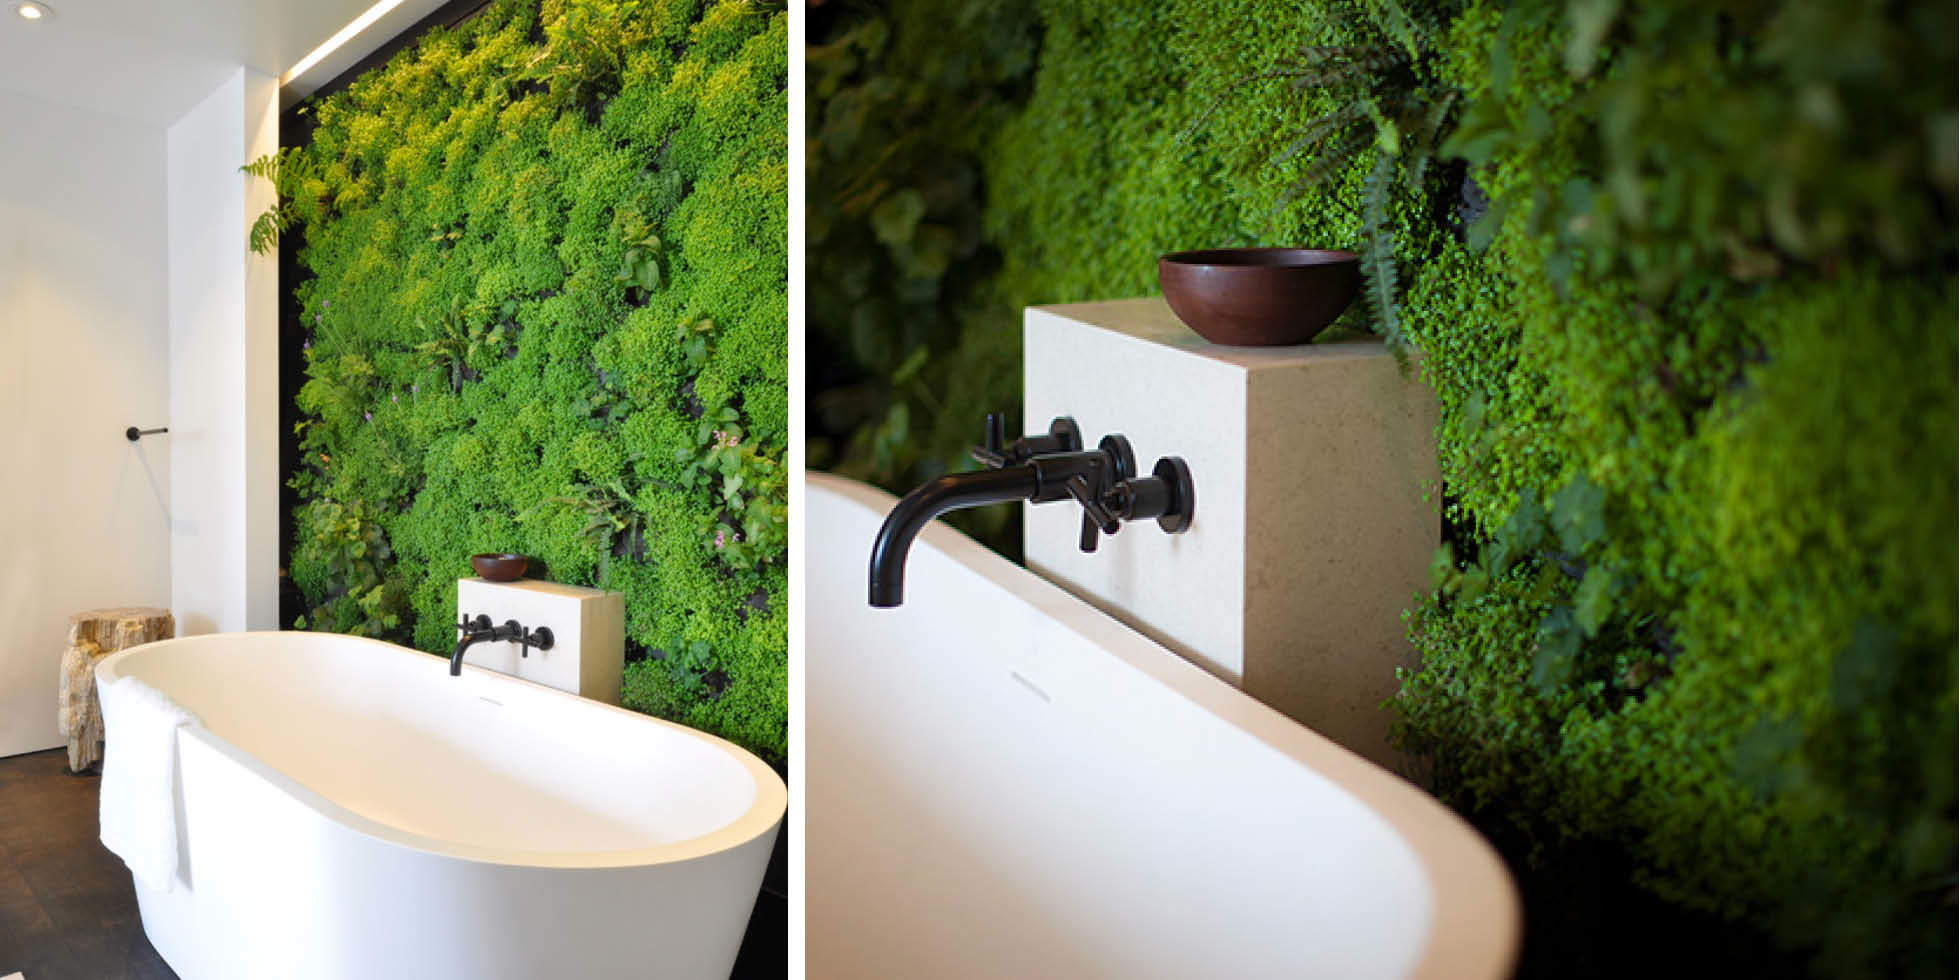 Zen Bathroom Escape Living Wall by Habitat Horticulture - View 1